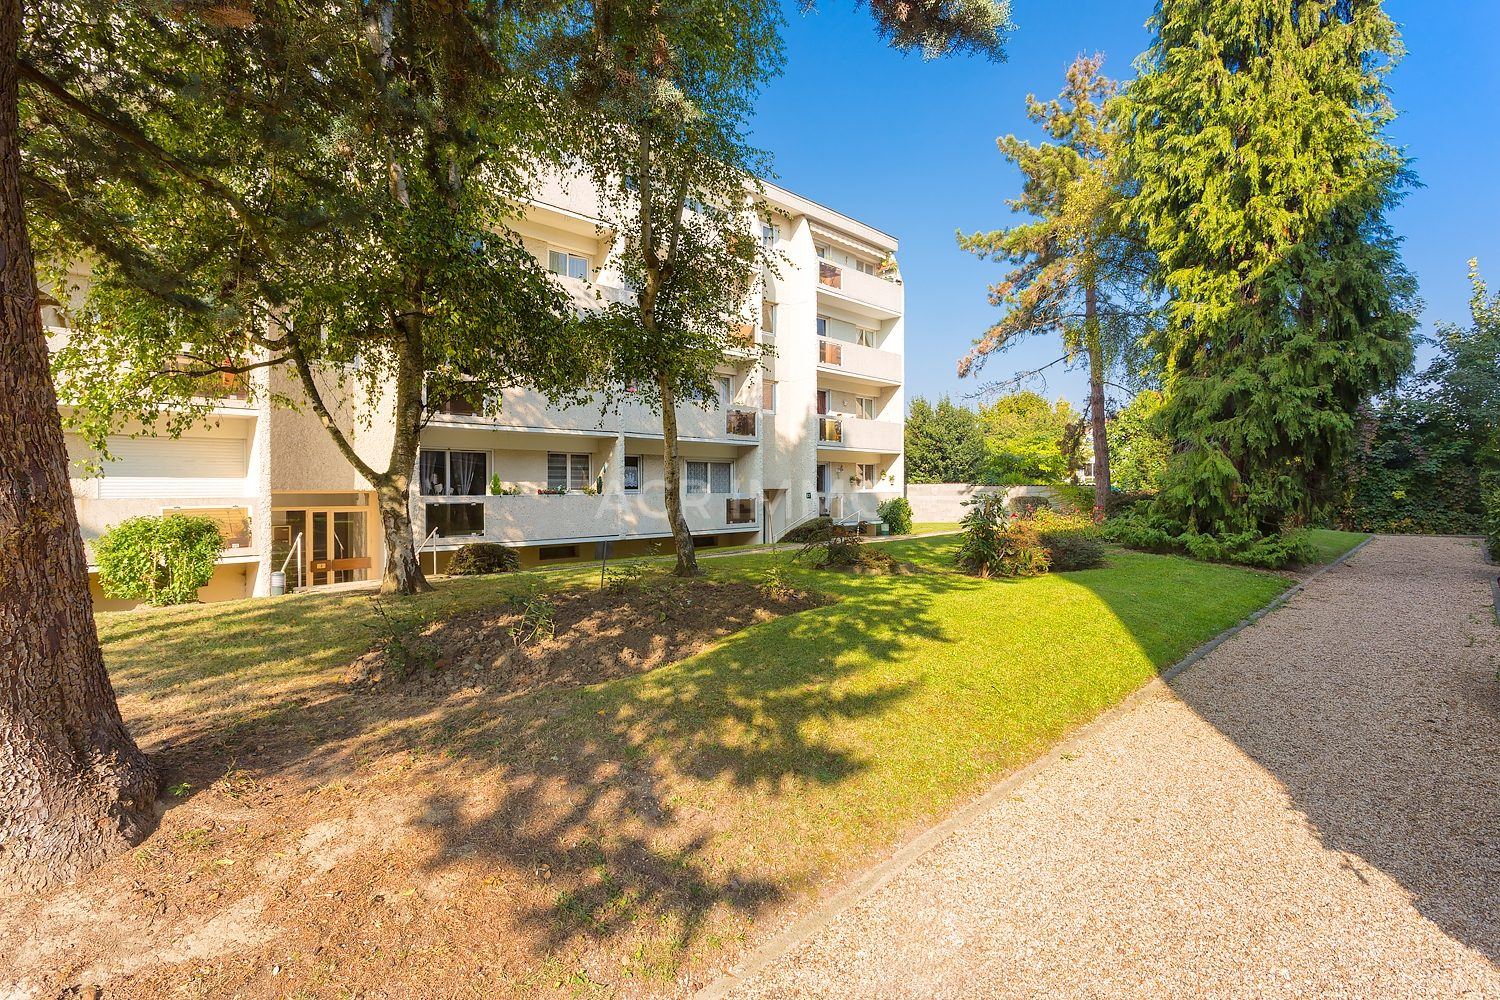 Appartement f3 68m andr sy acr immo agence immobili re for Immobilier f3